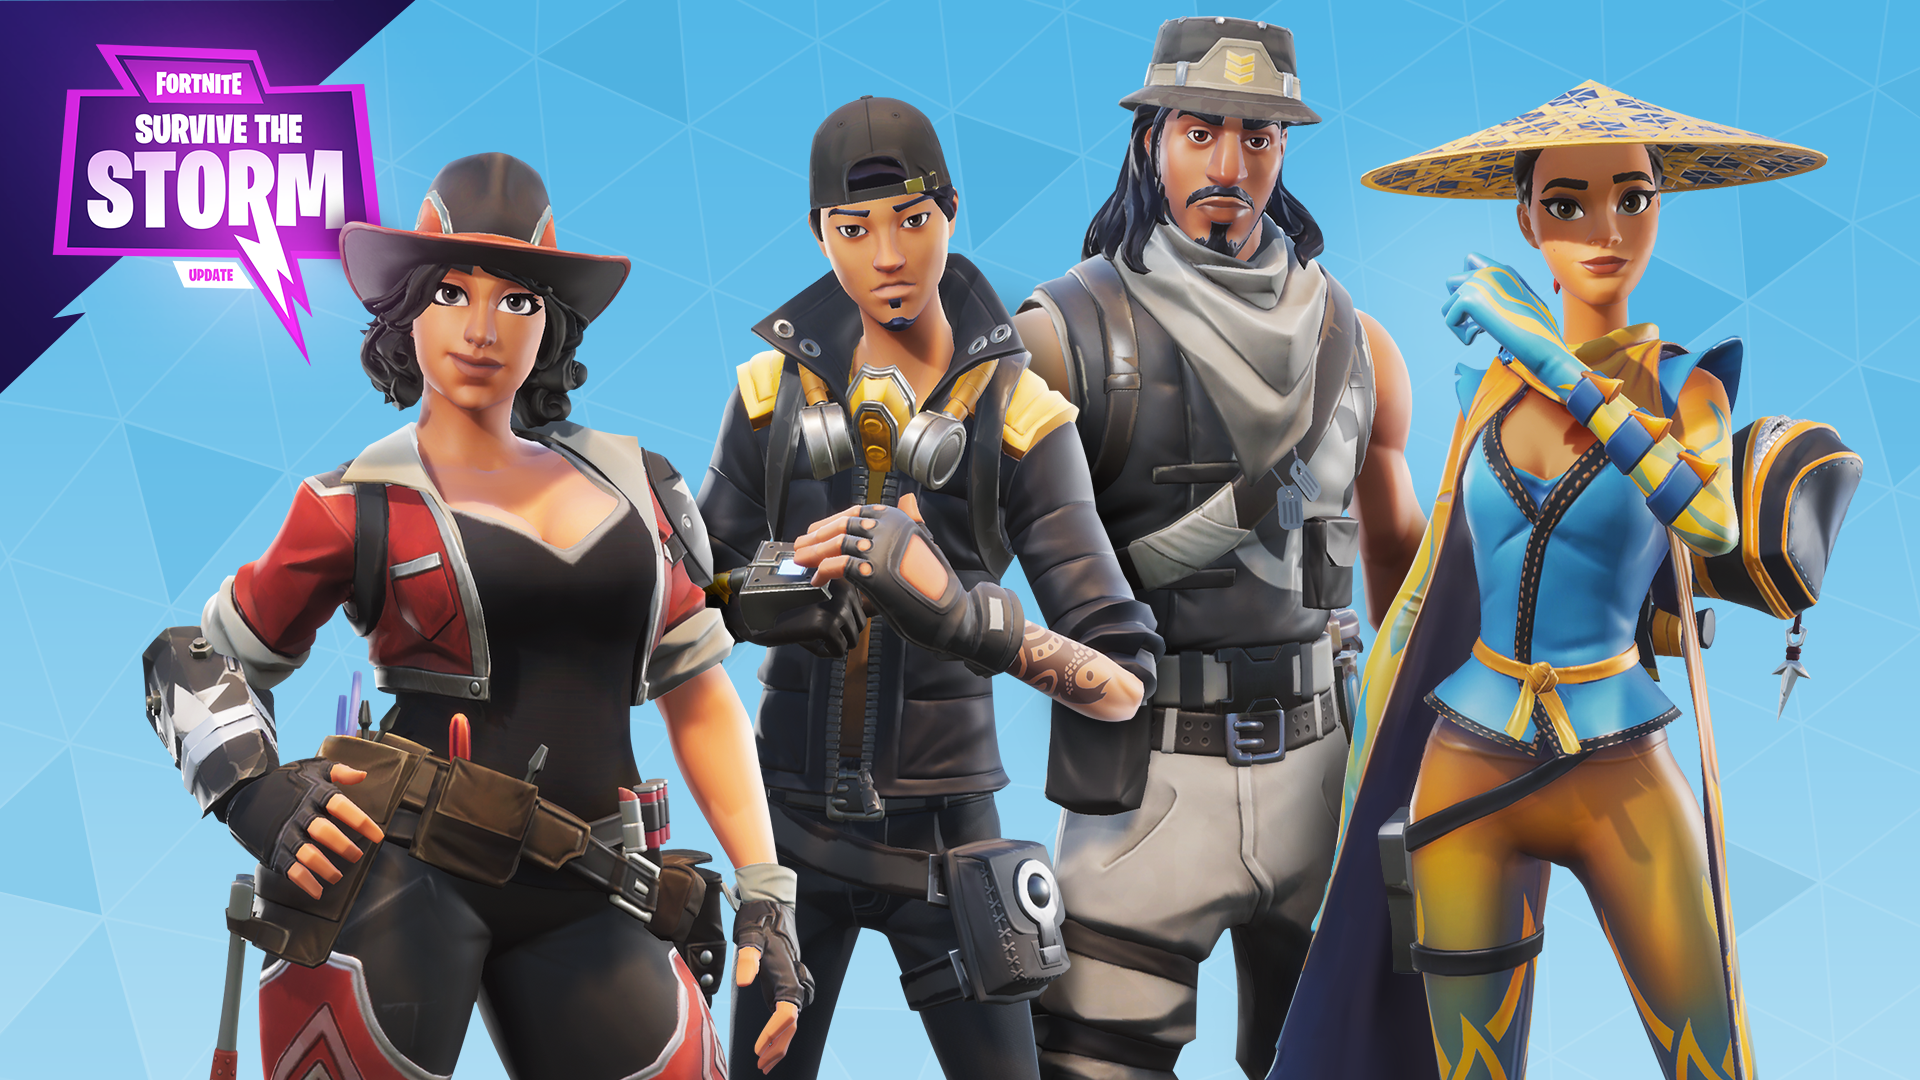 Fortnite%2Fblog%2Fsurvive-the-storm---release-notes%2FENG_New-Hereos-1920x1080-48e089d75b09d2d6e926430b2f58a8eaa4bb987a